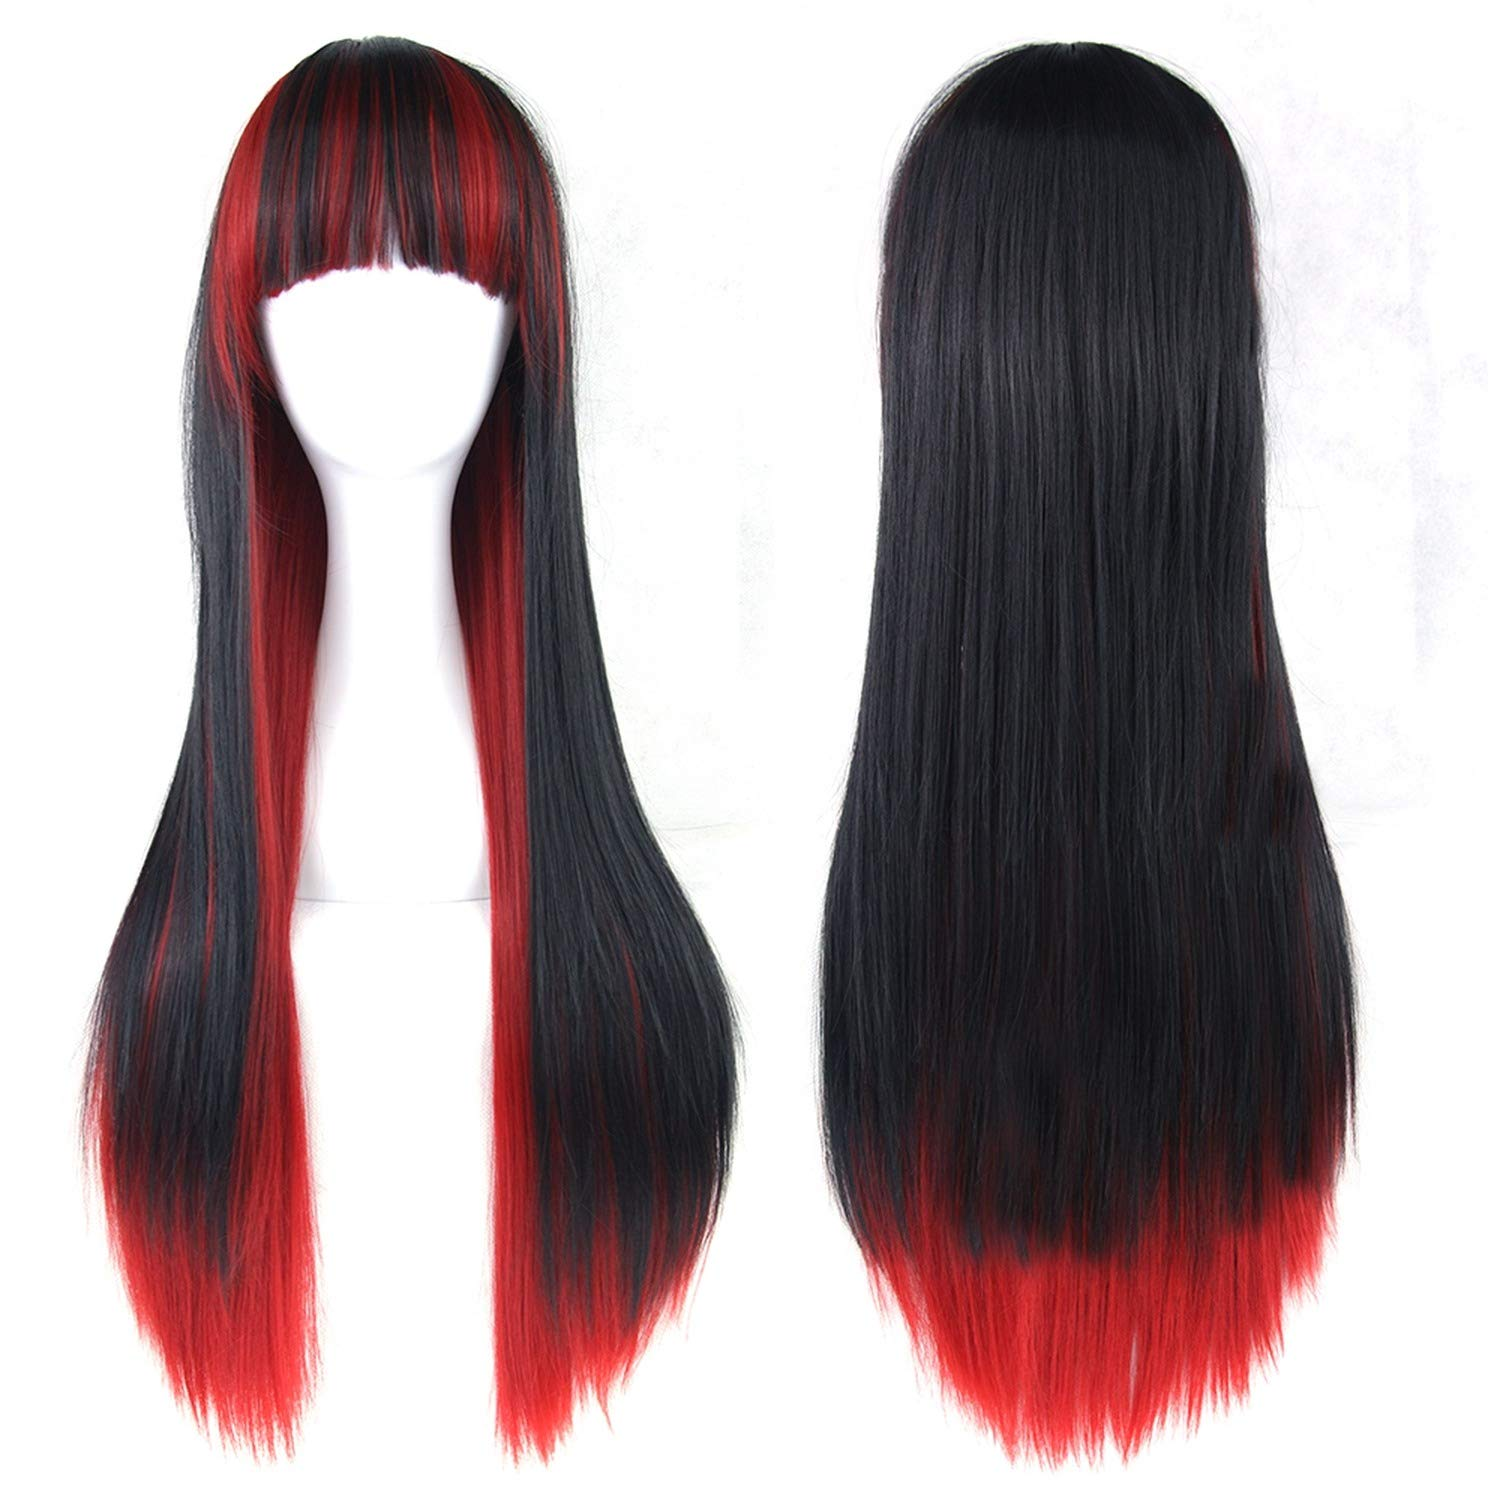 13 Colors Wavy Women Wig High Temperature Fiber Synthetic Hairpiece Long Ombre Hair Cosplay Wigs,4/30Hl,28inches by Jane Love